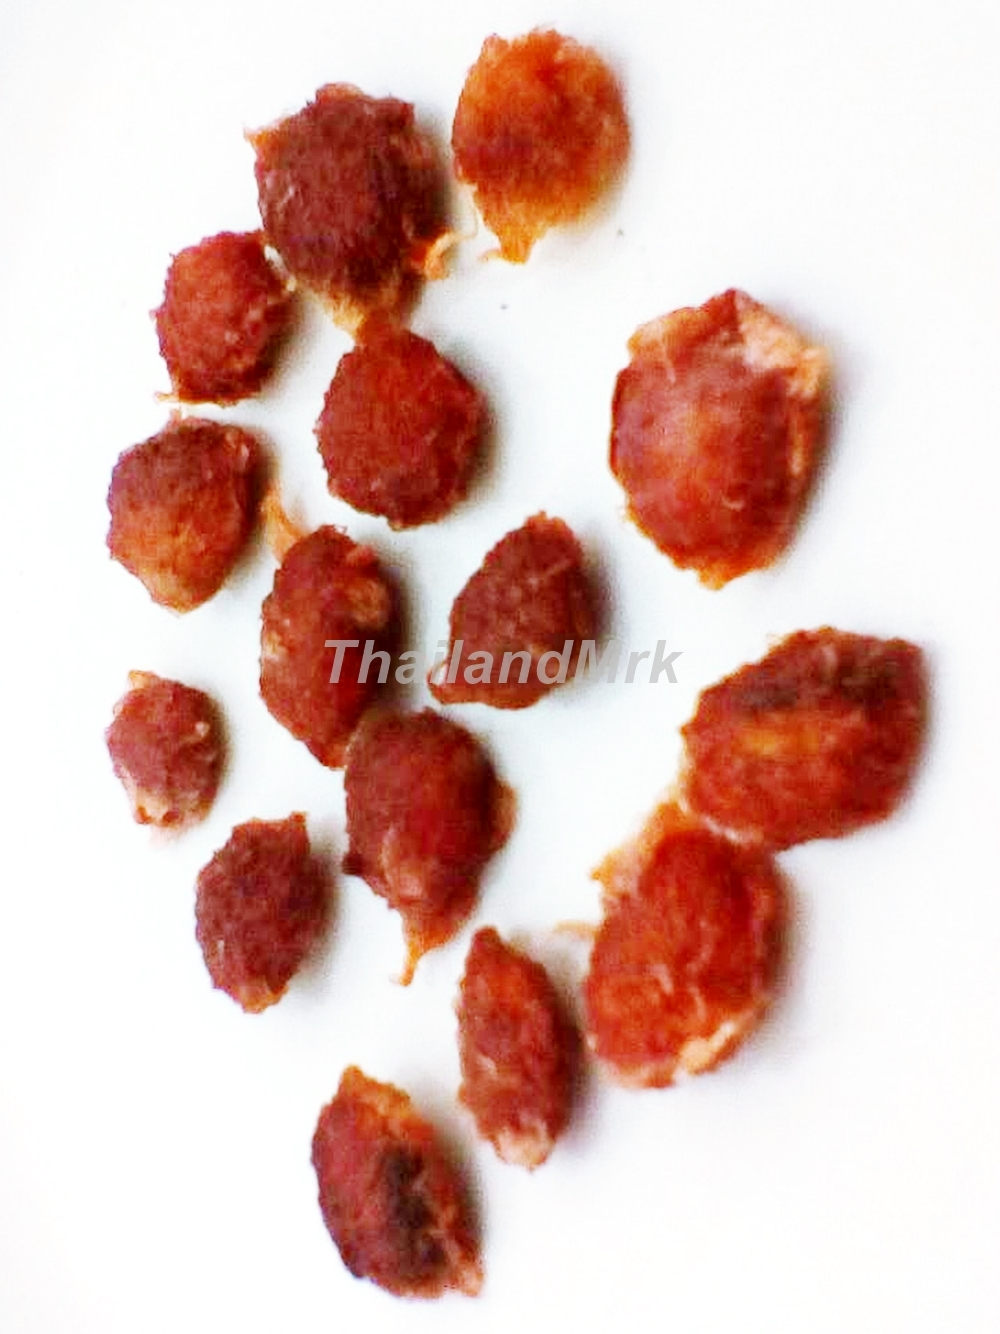 Mangosteen Seeds Images